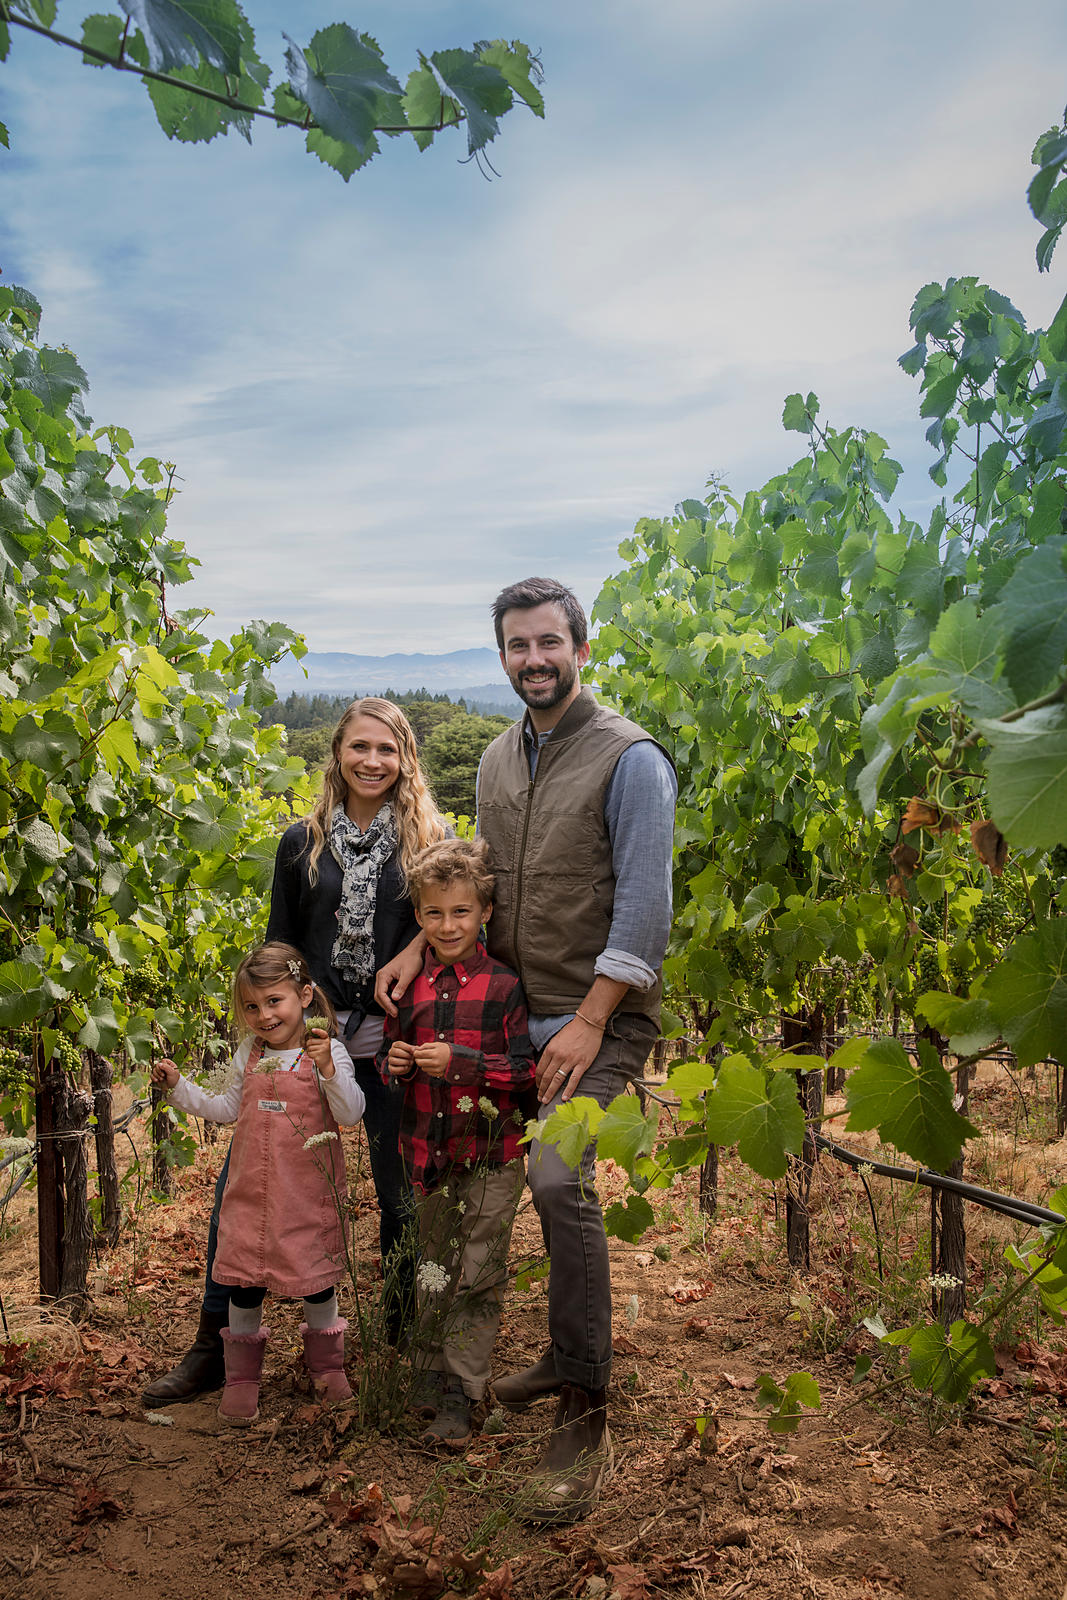 Hillary and Jason Driscoll of Driscoll Wine Company in their Sonoma County vineyard